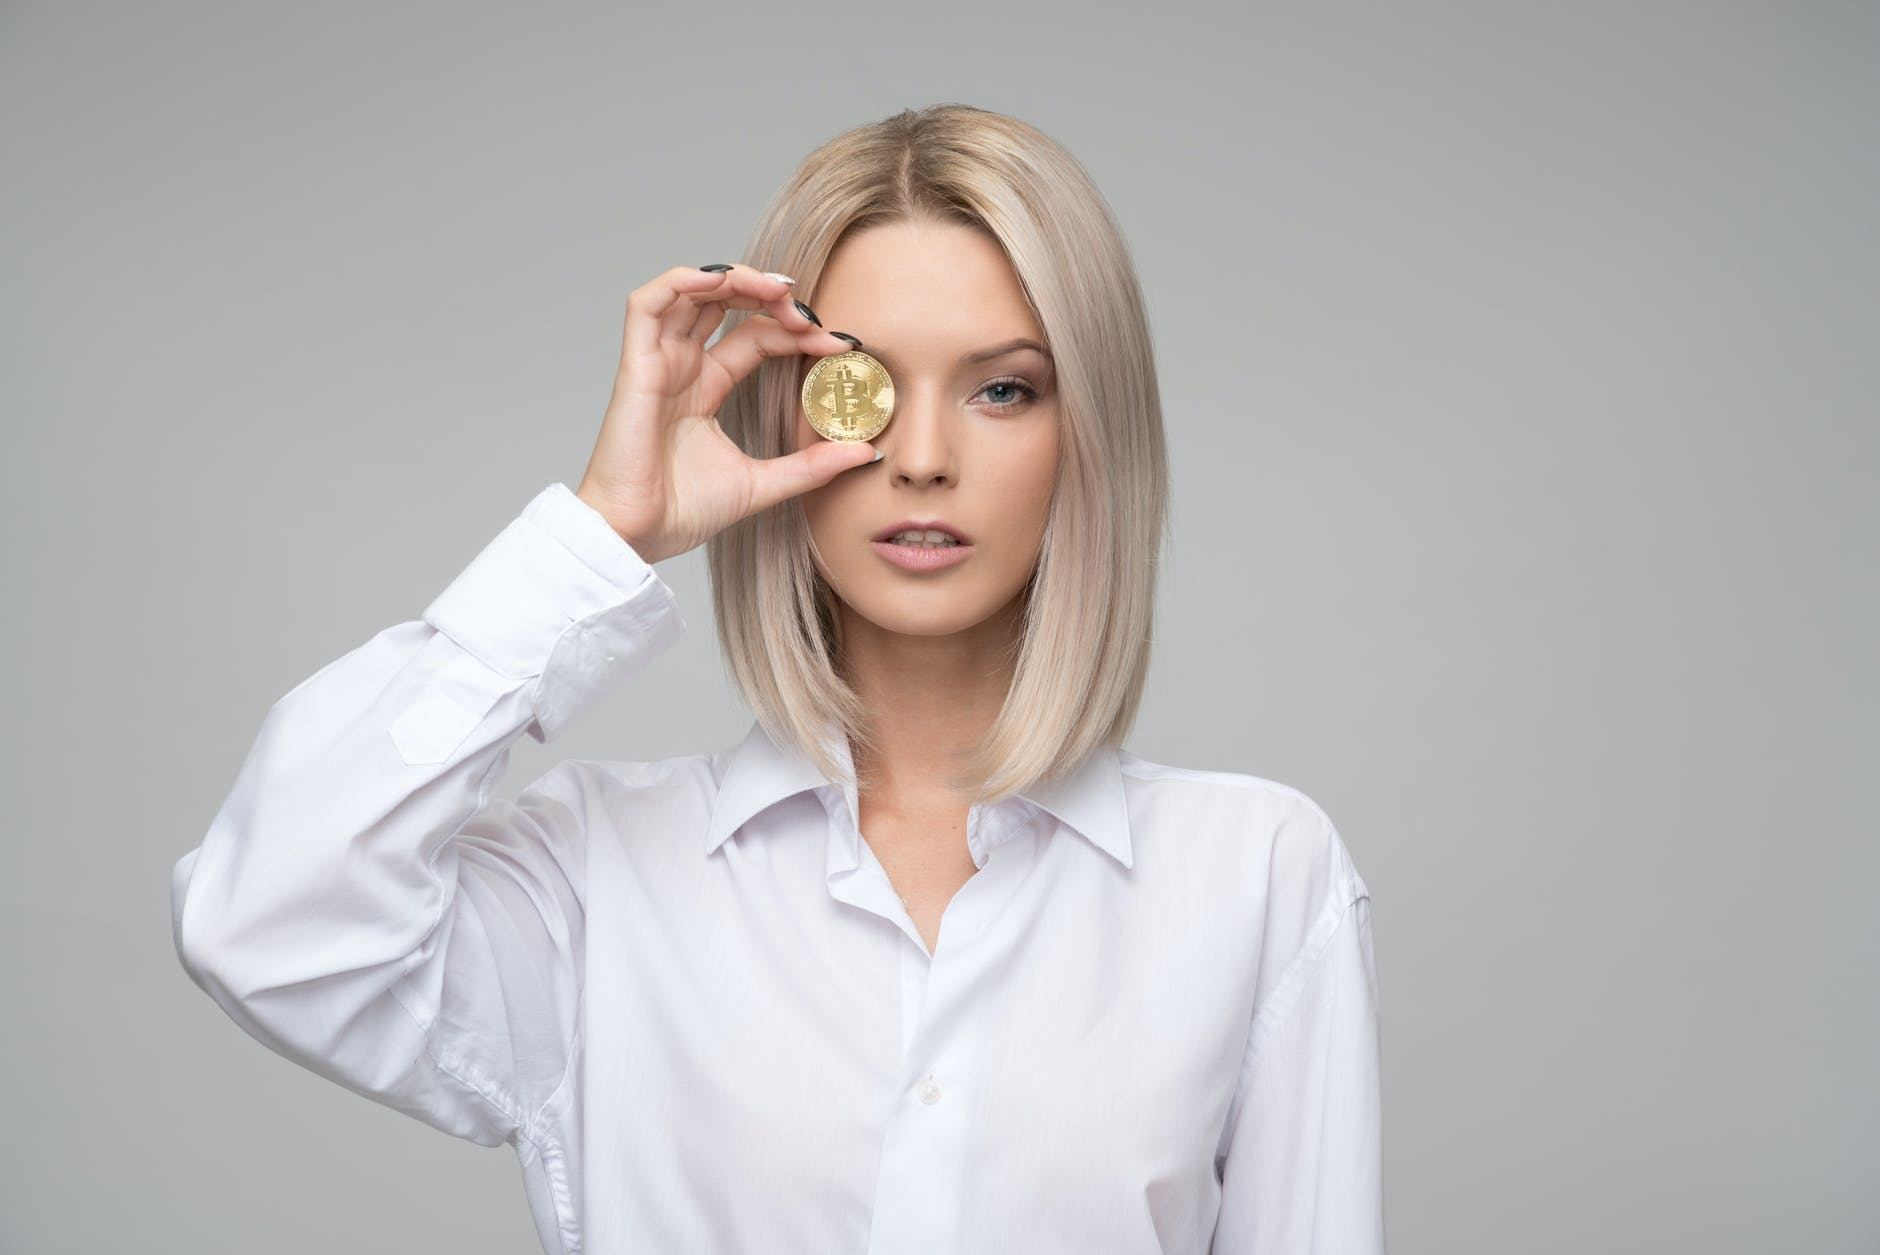 Do you know why you should buy at least 1 Bitcoin